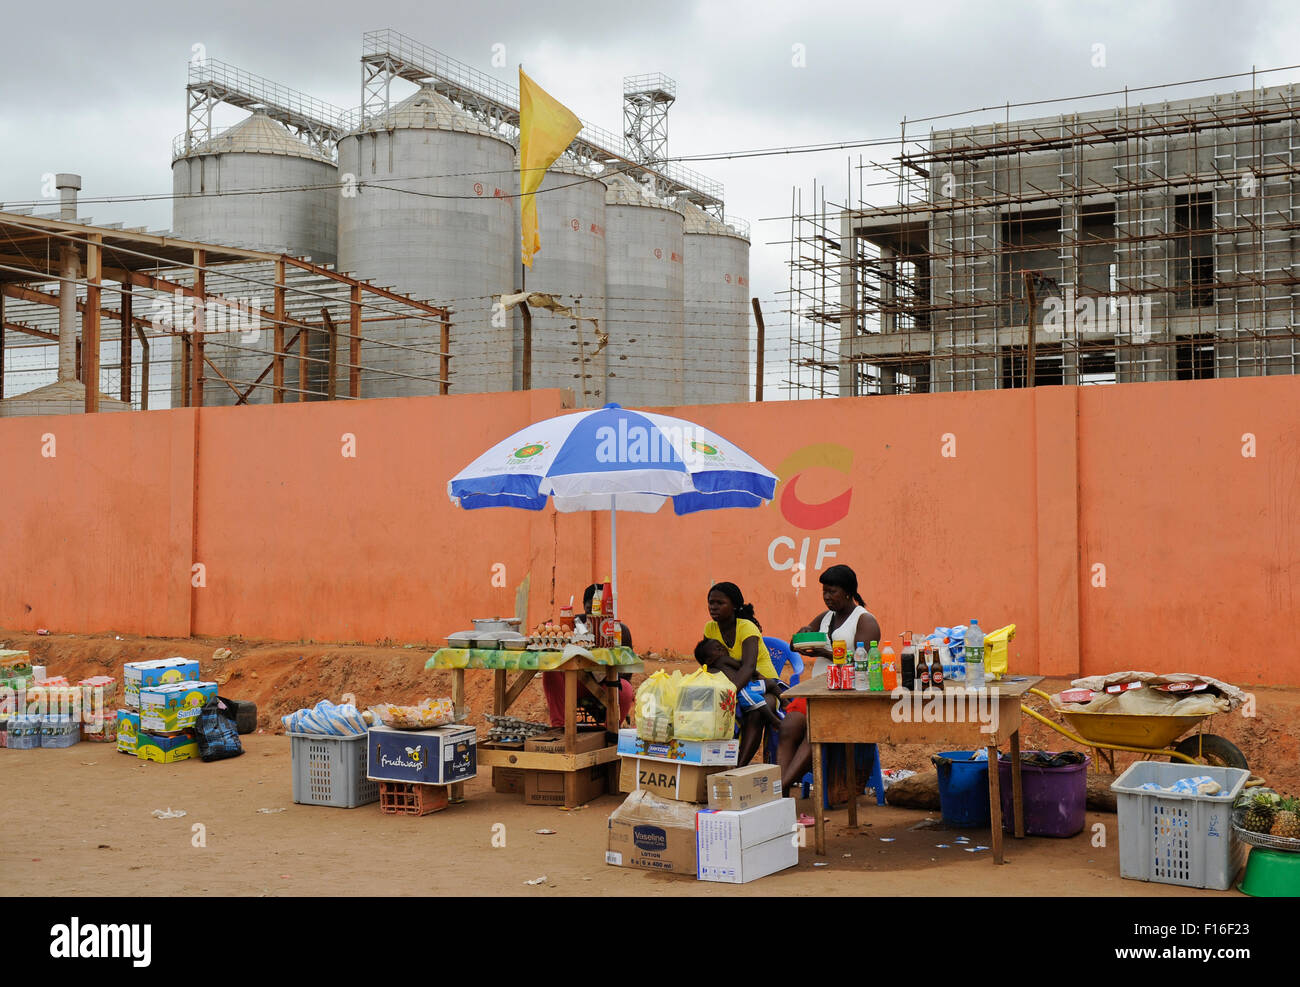 ANGOLA Luanda, the capital is one of the expensive real estate markets worldwide, construction site of new building - Stock Image